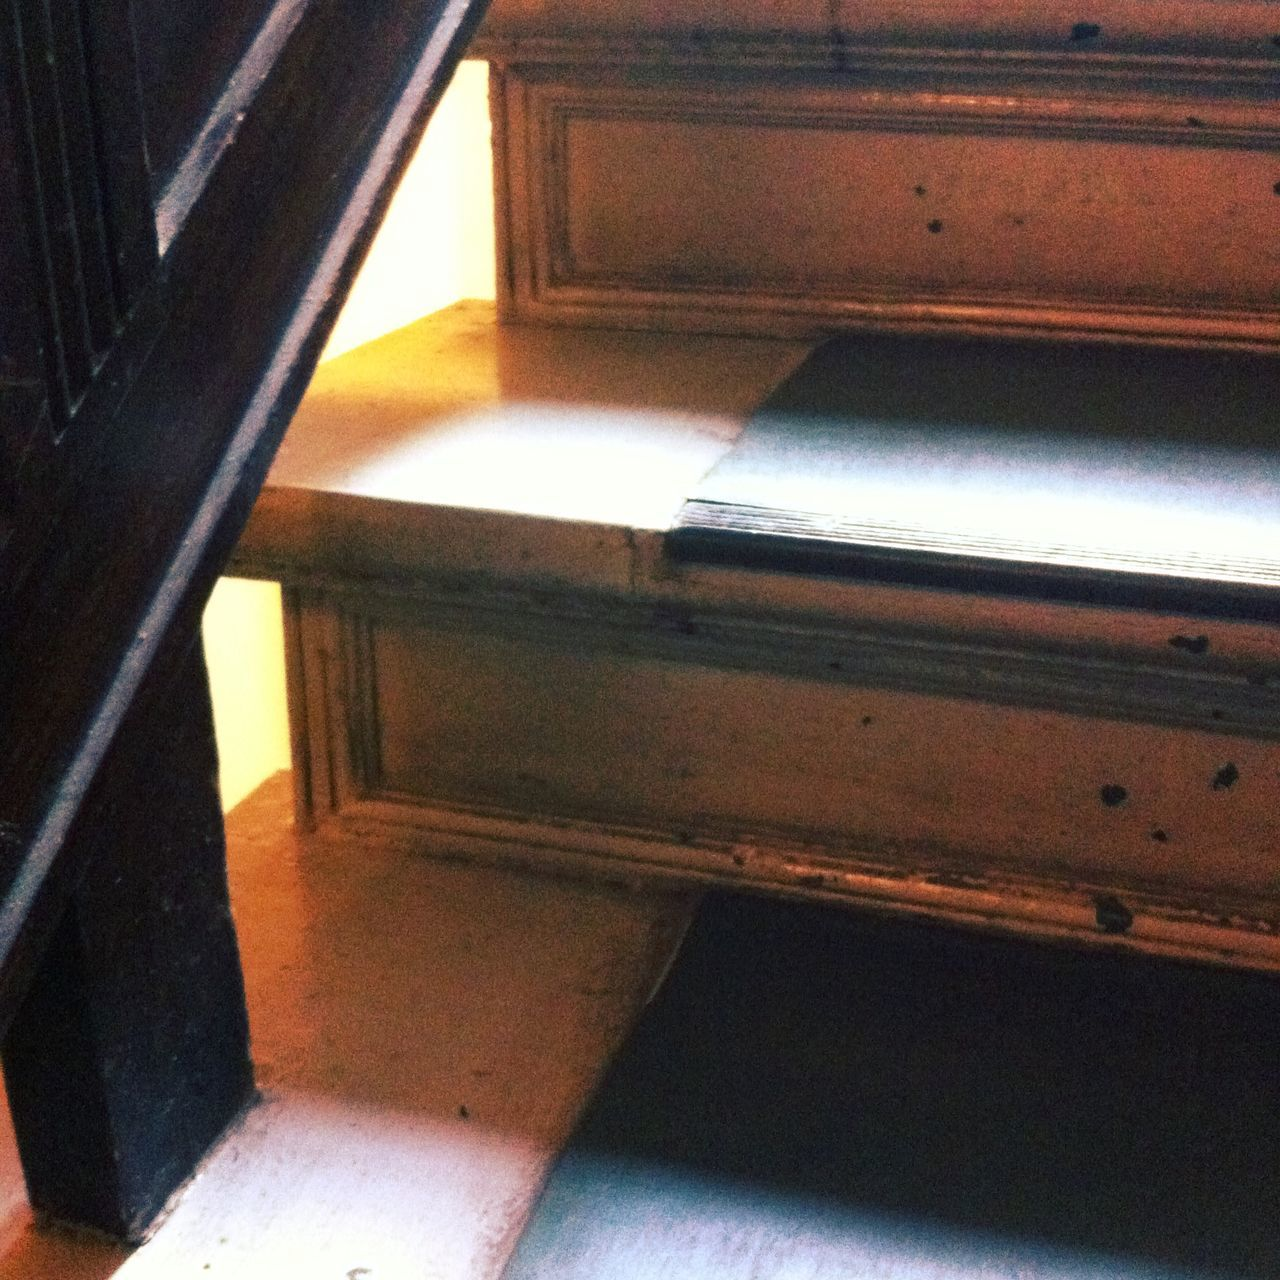 indoors, steps, door, wood - material, staircase, steps and staircases, home interior, no people, close-up, day